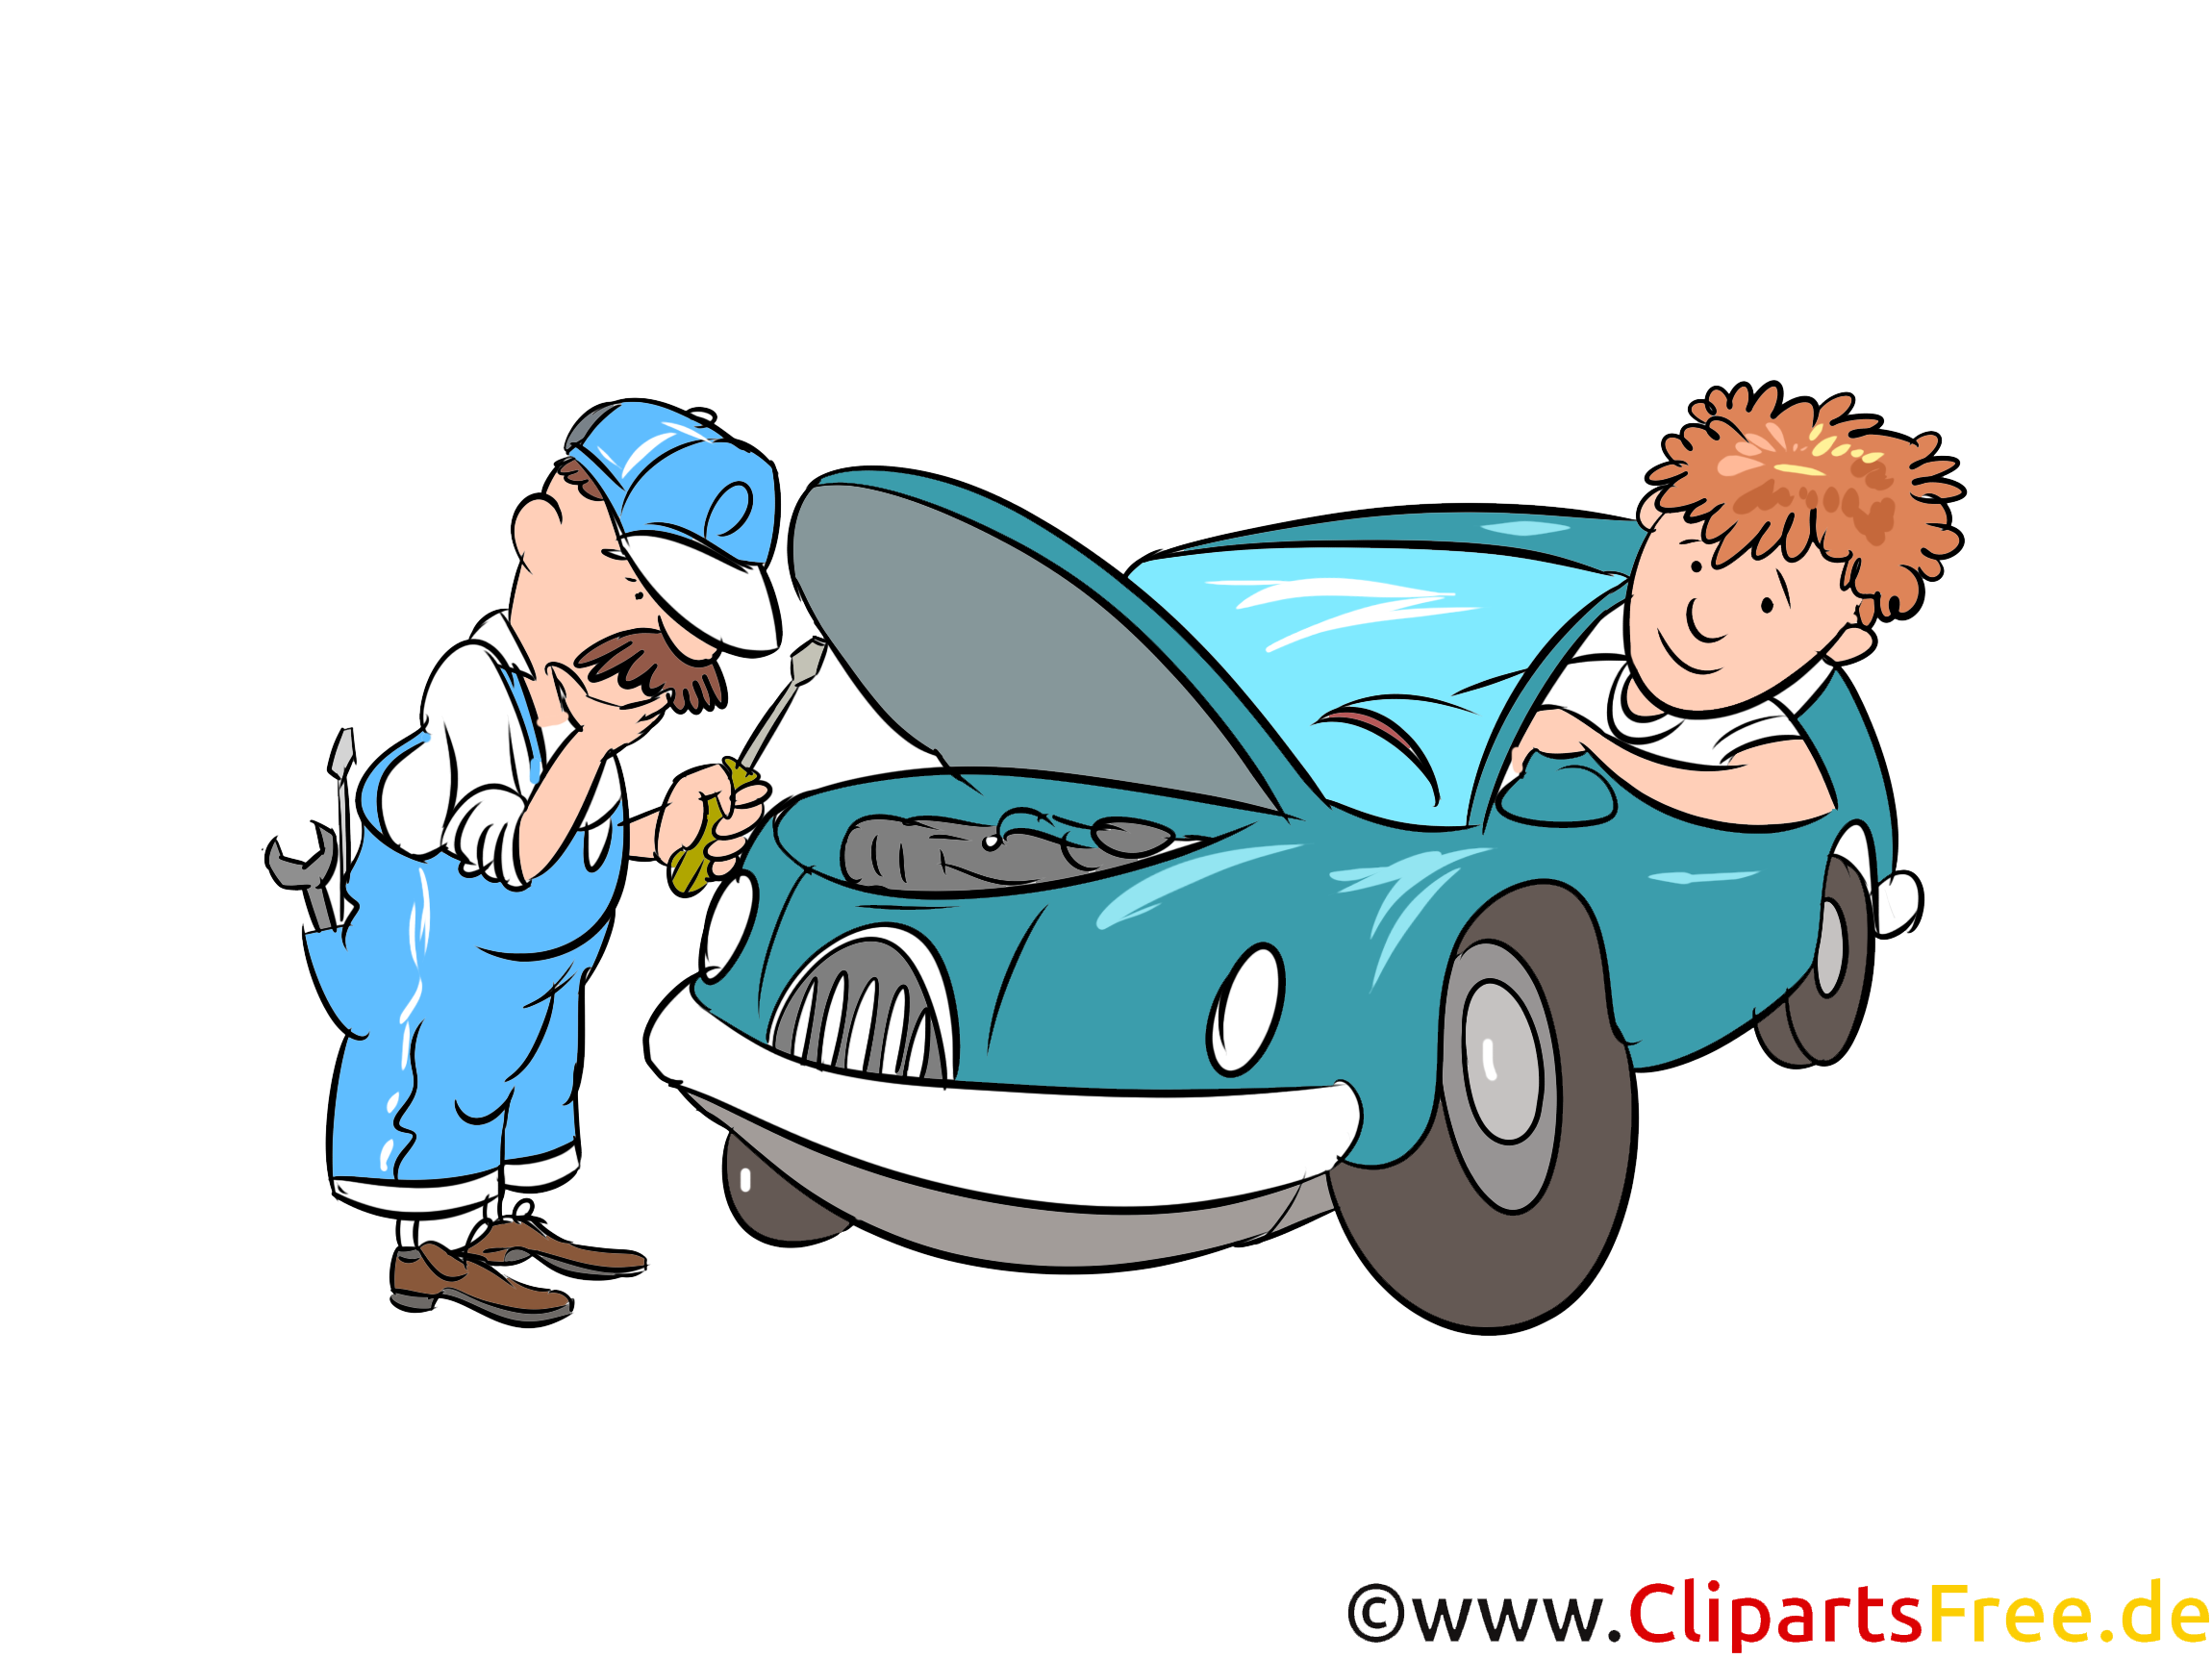 Autoreparatur in werkstatt bild illustration clipart gratis for Clipart gratis download